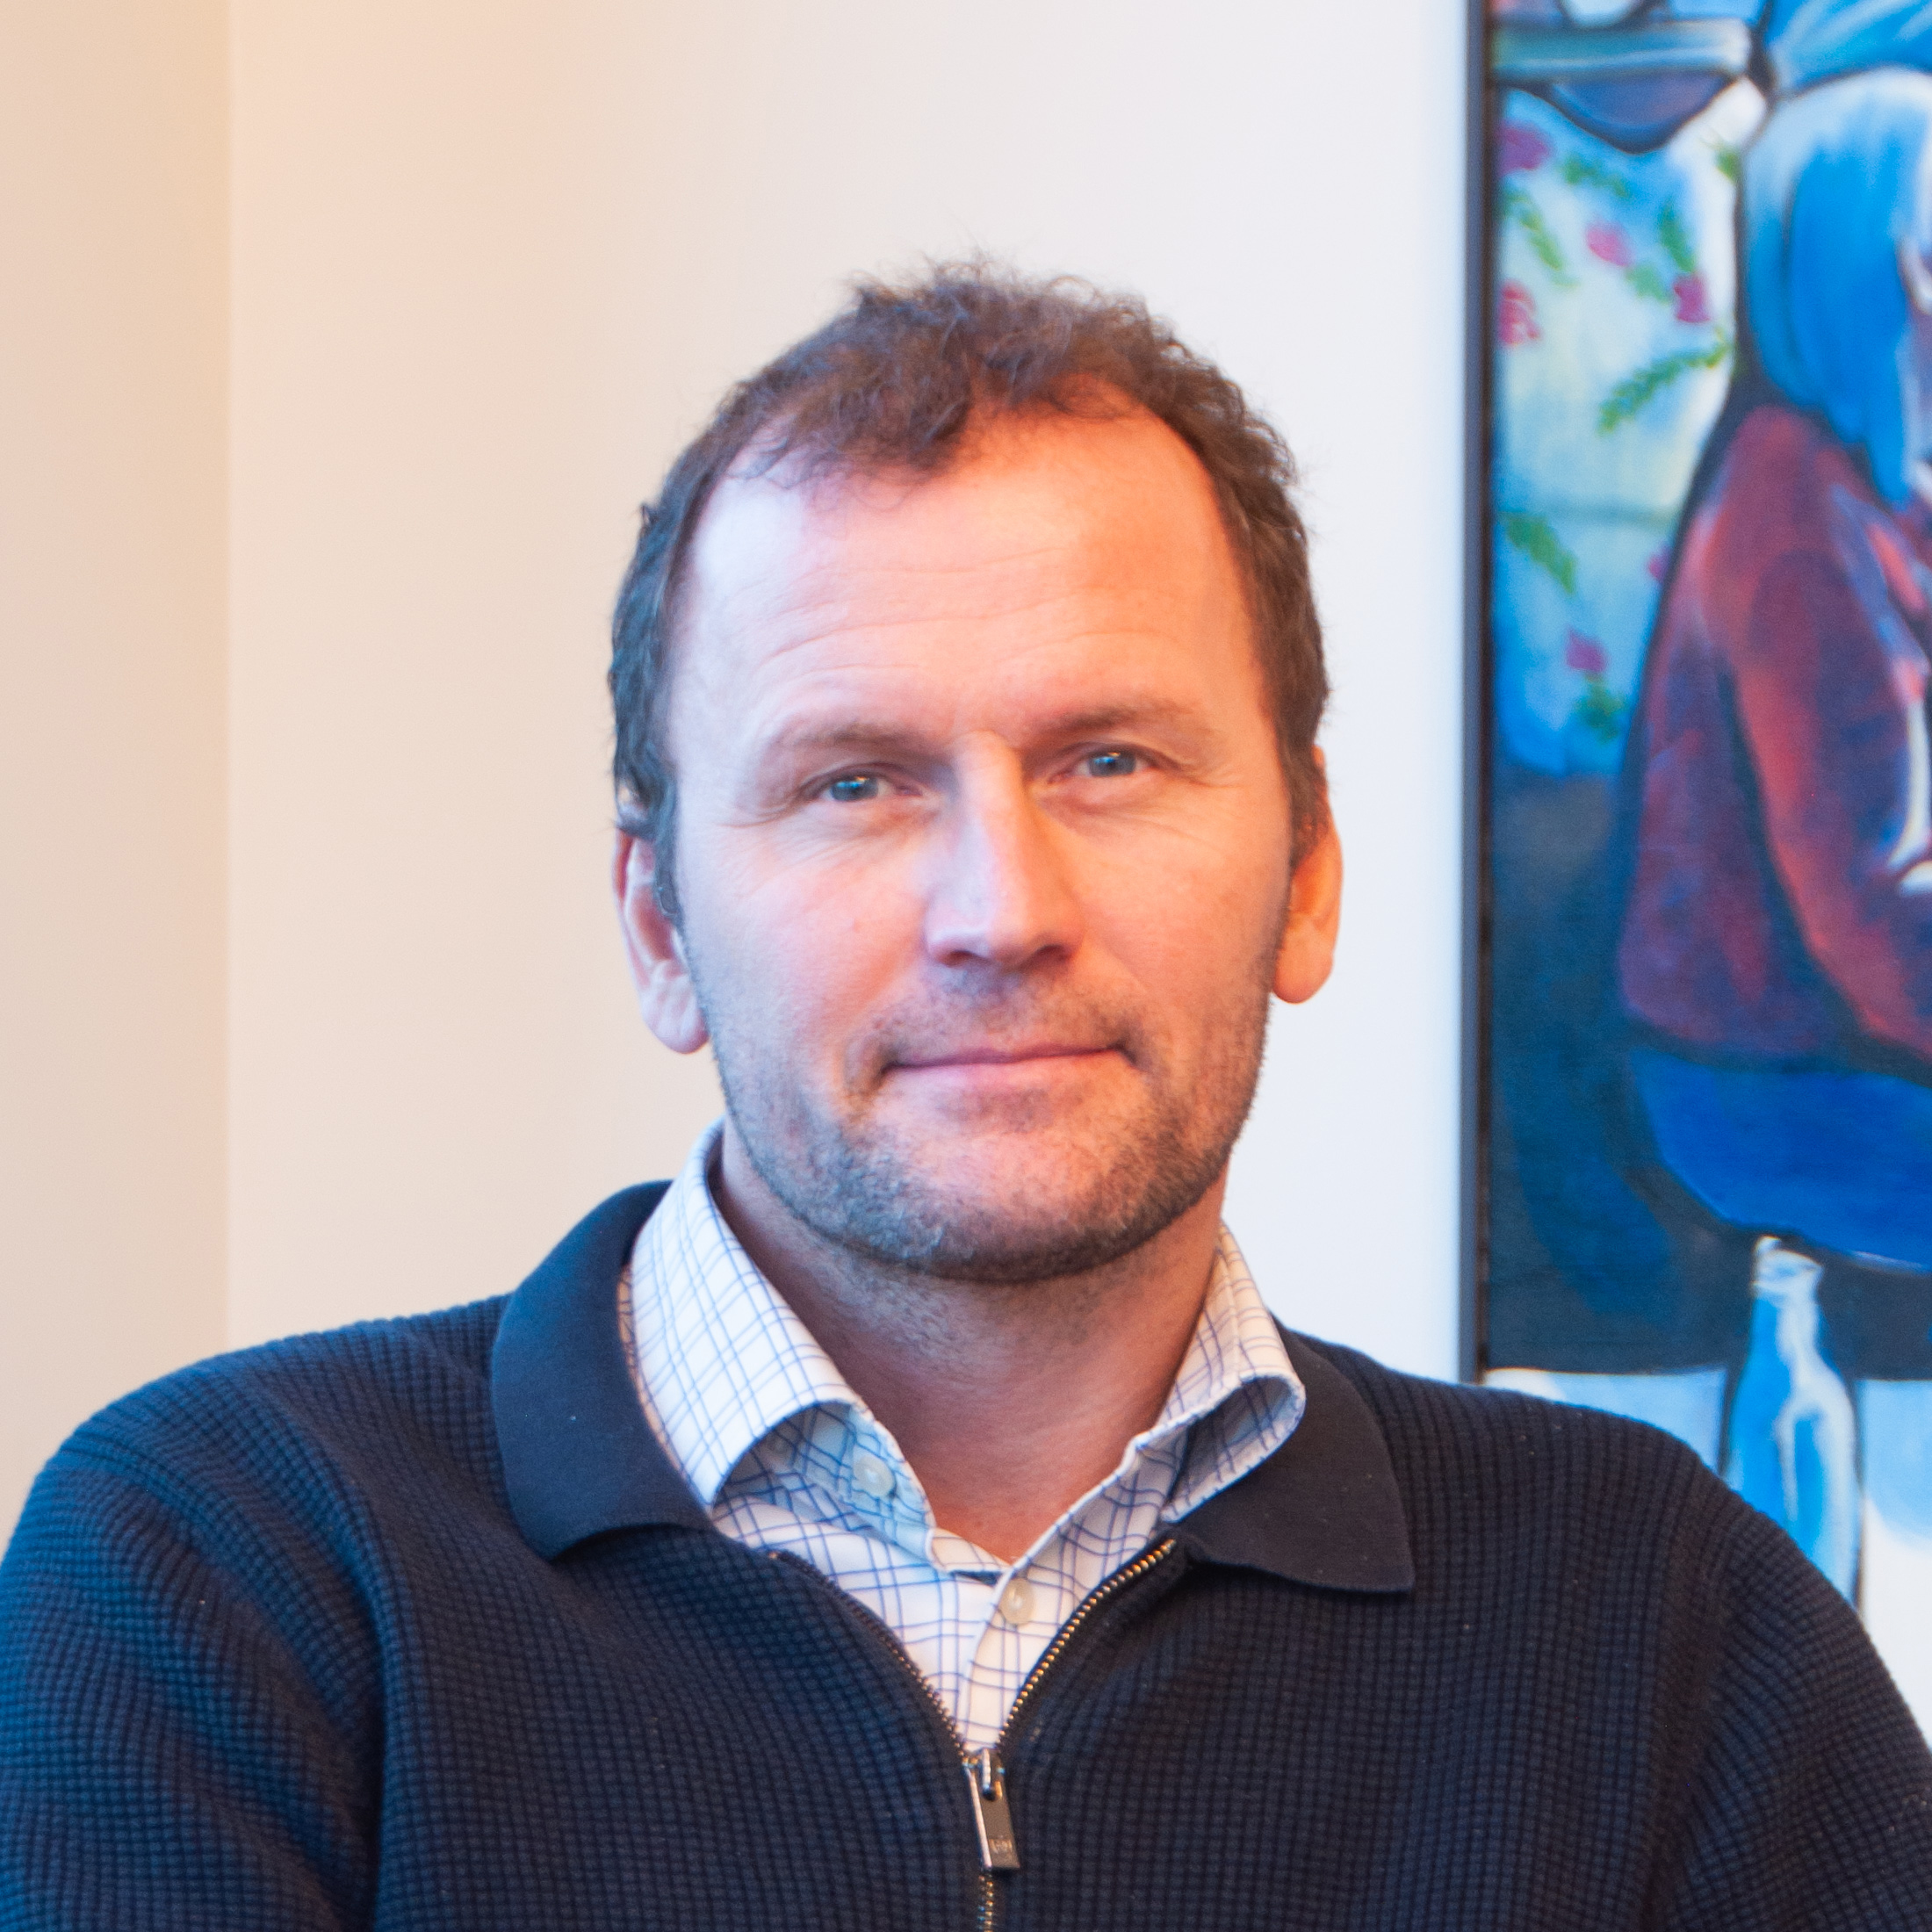 Swedish Interactive Audio Entertainment company Wanderword appoints Johan Strömberg as their new CEO